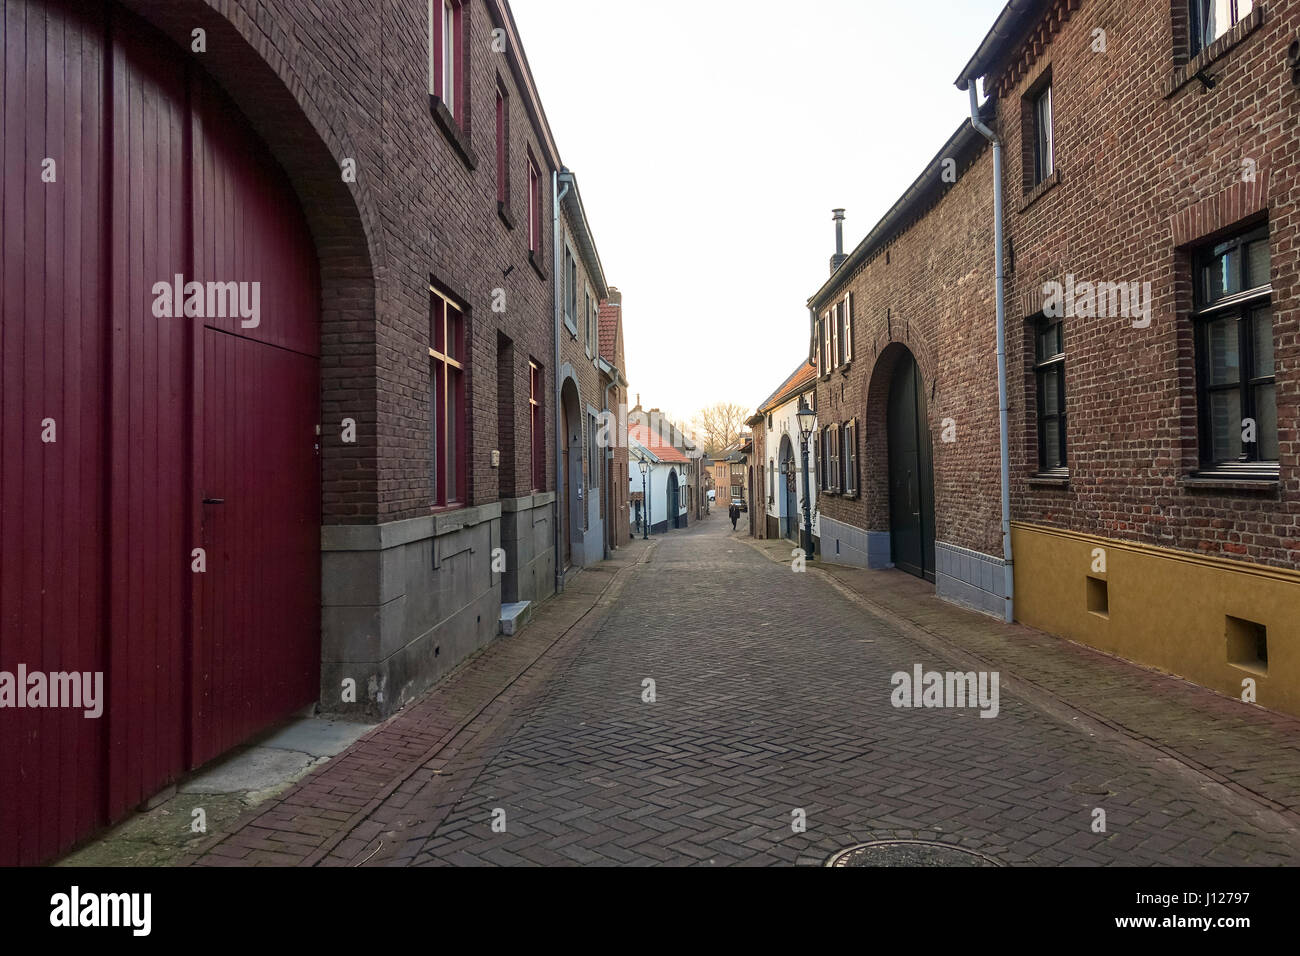 Street view of historic Broekstraat with old farmhouses, Sittard province of Limburg, Netherlands, Holland. - Stock Image